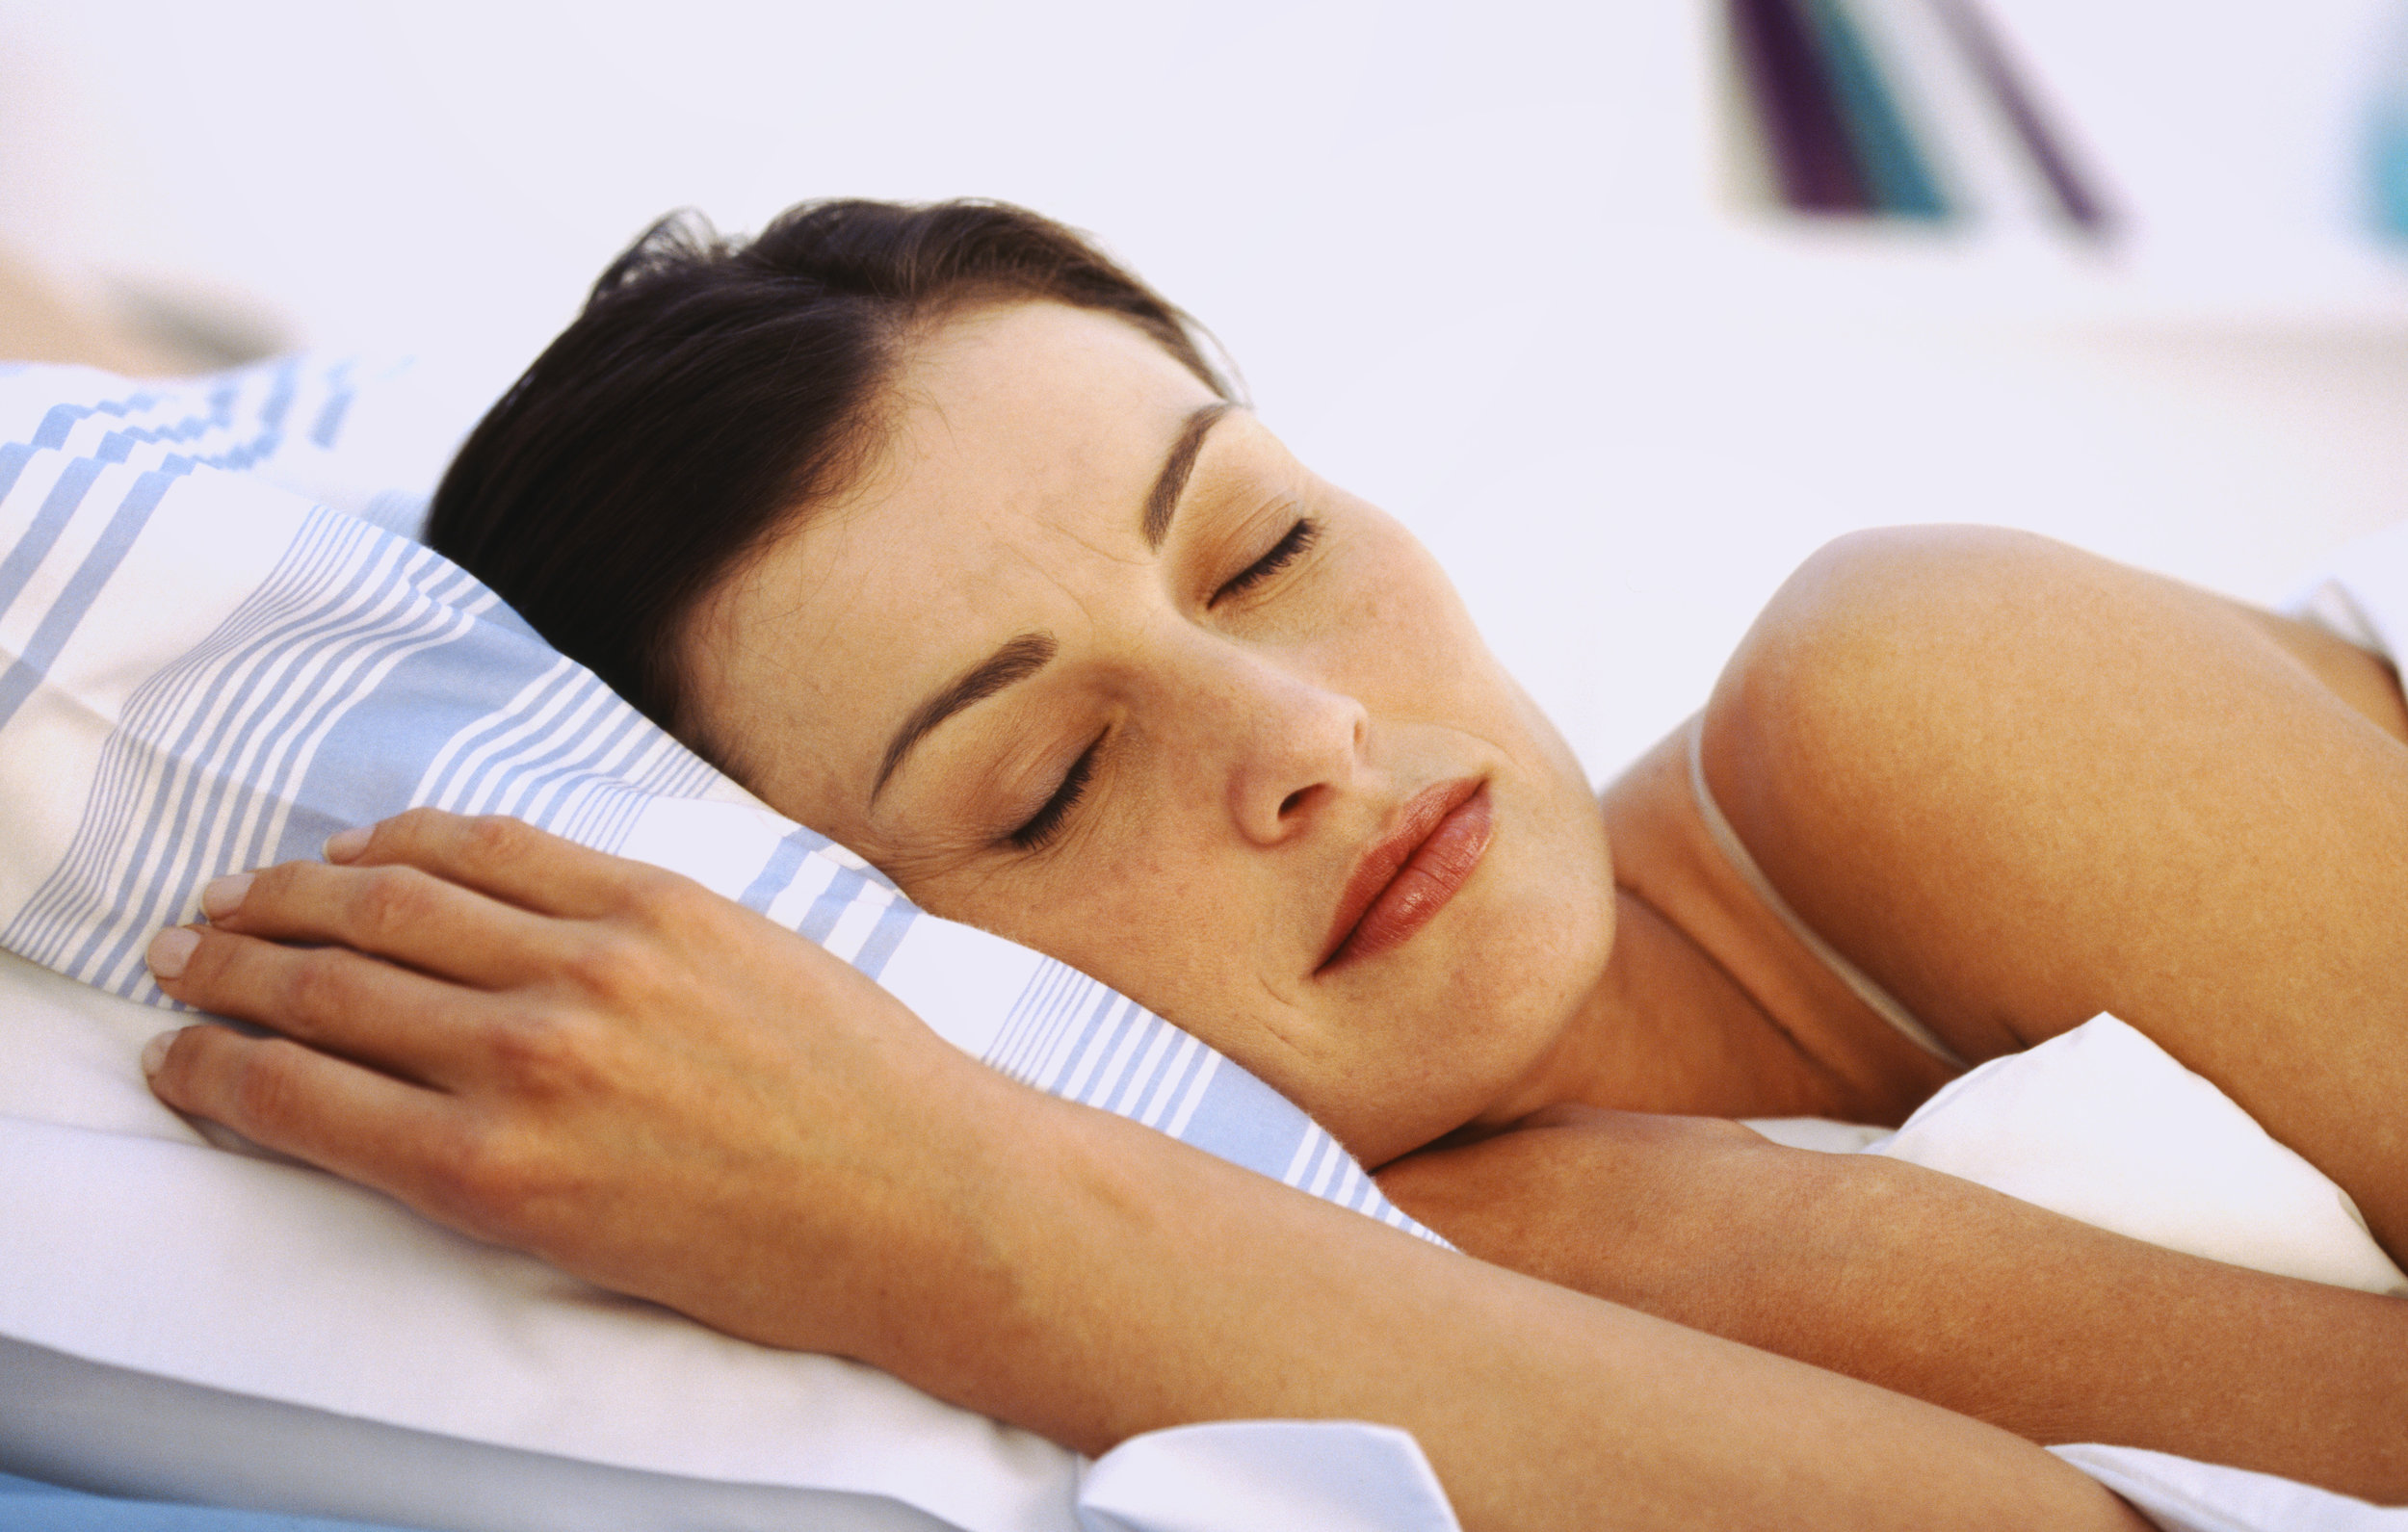 8 Best Pillows for Side Sleepers With Neck and Shoulder Pain